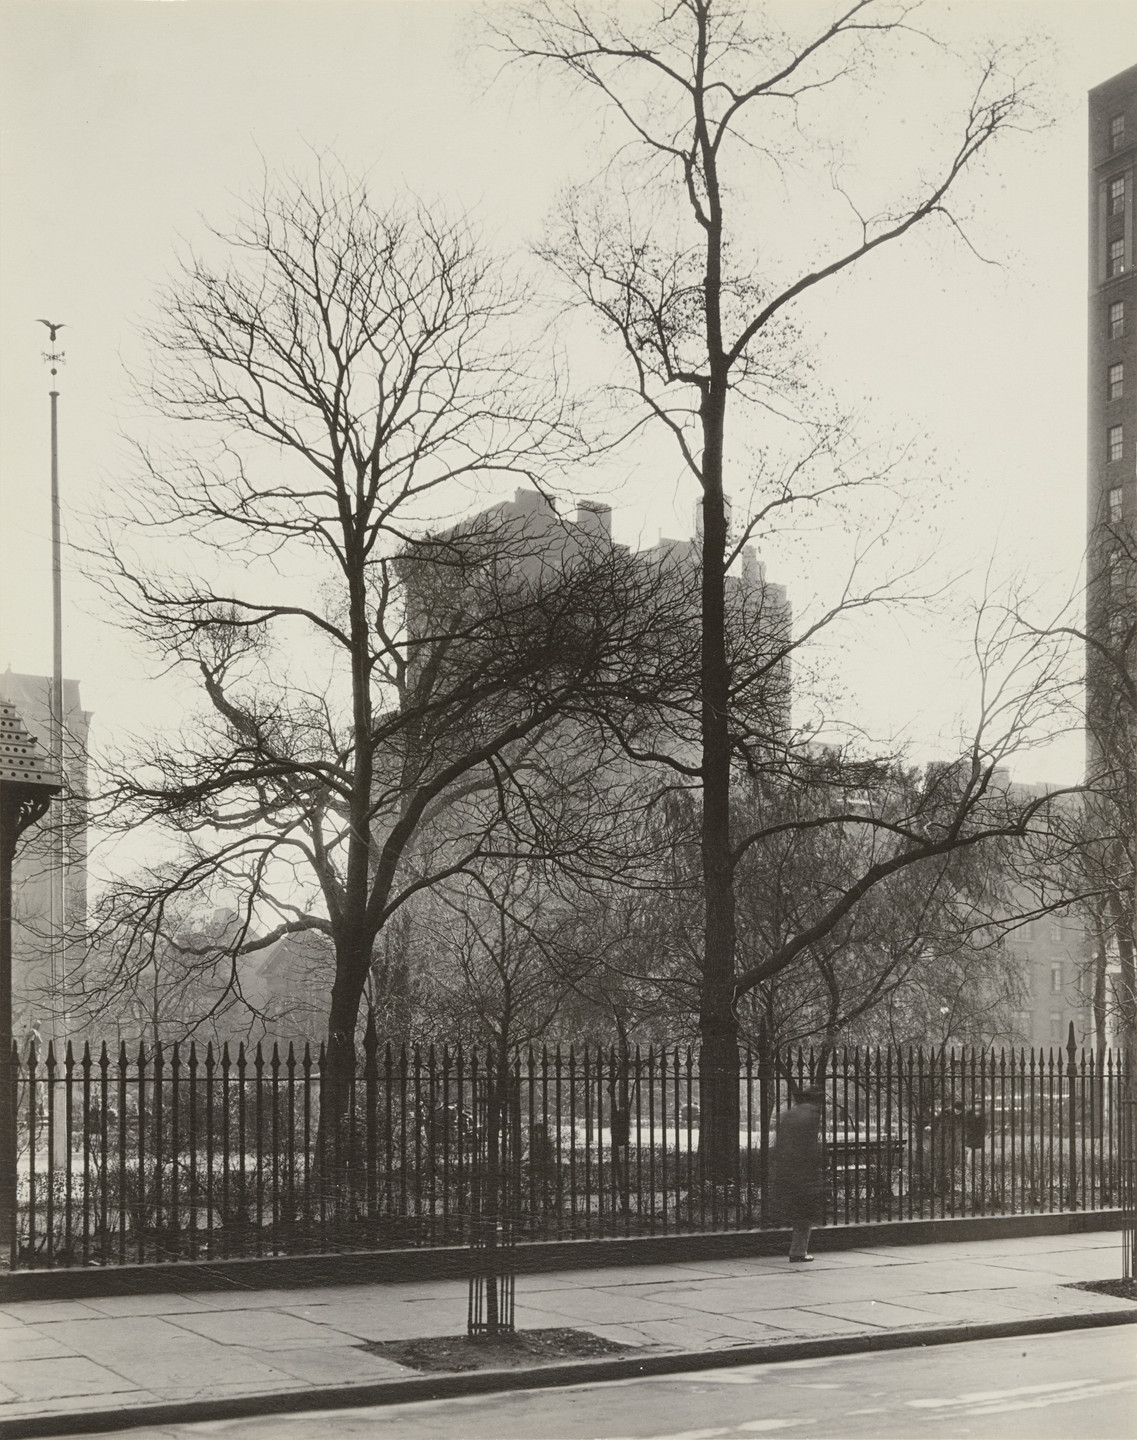 Berenice Abbott. West Side of Gramercy Park West, nos. 3-4, Manhattan. November 27, 1935